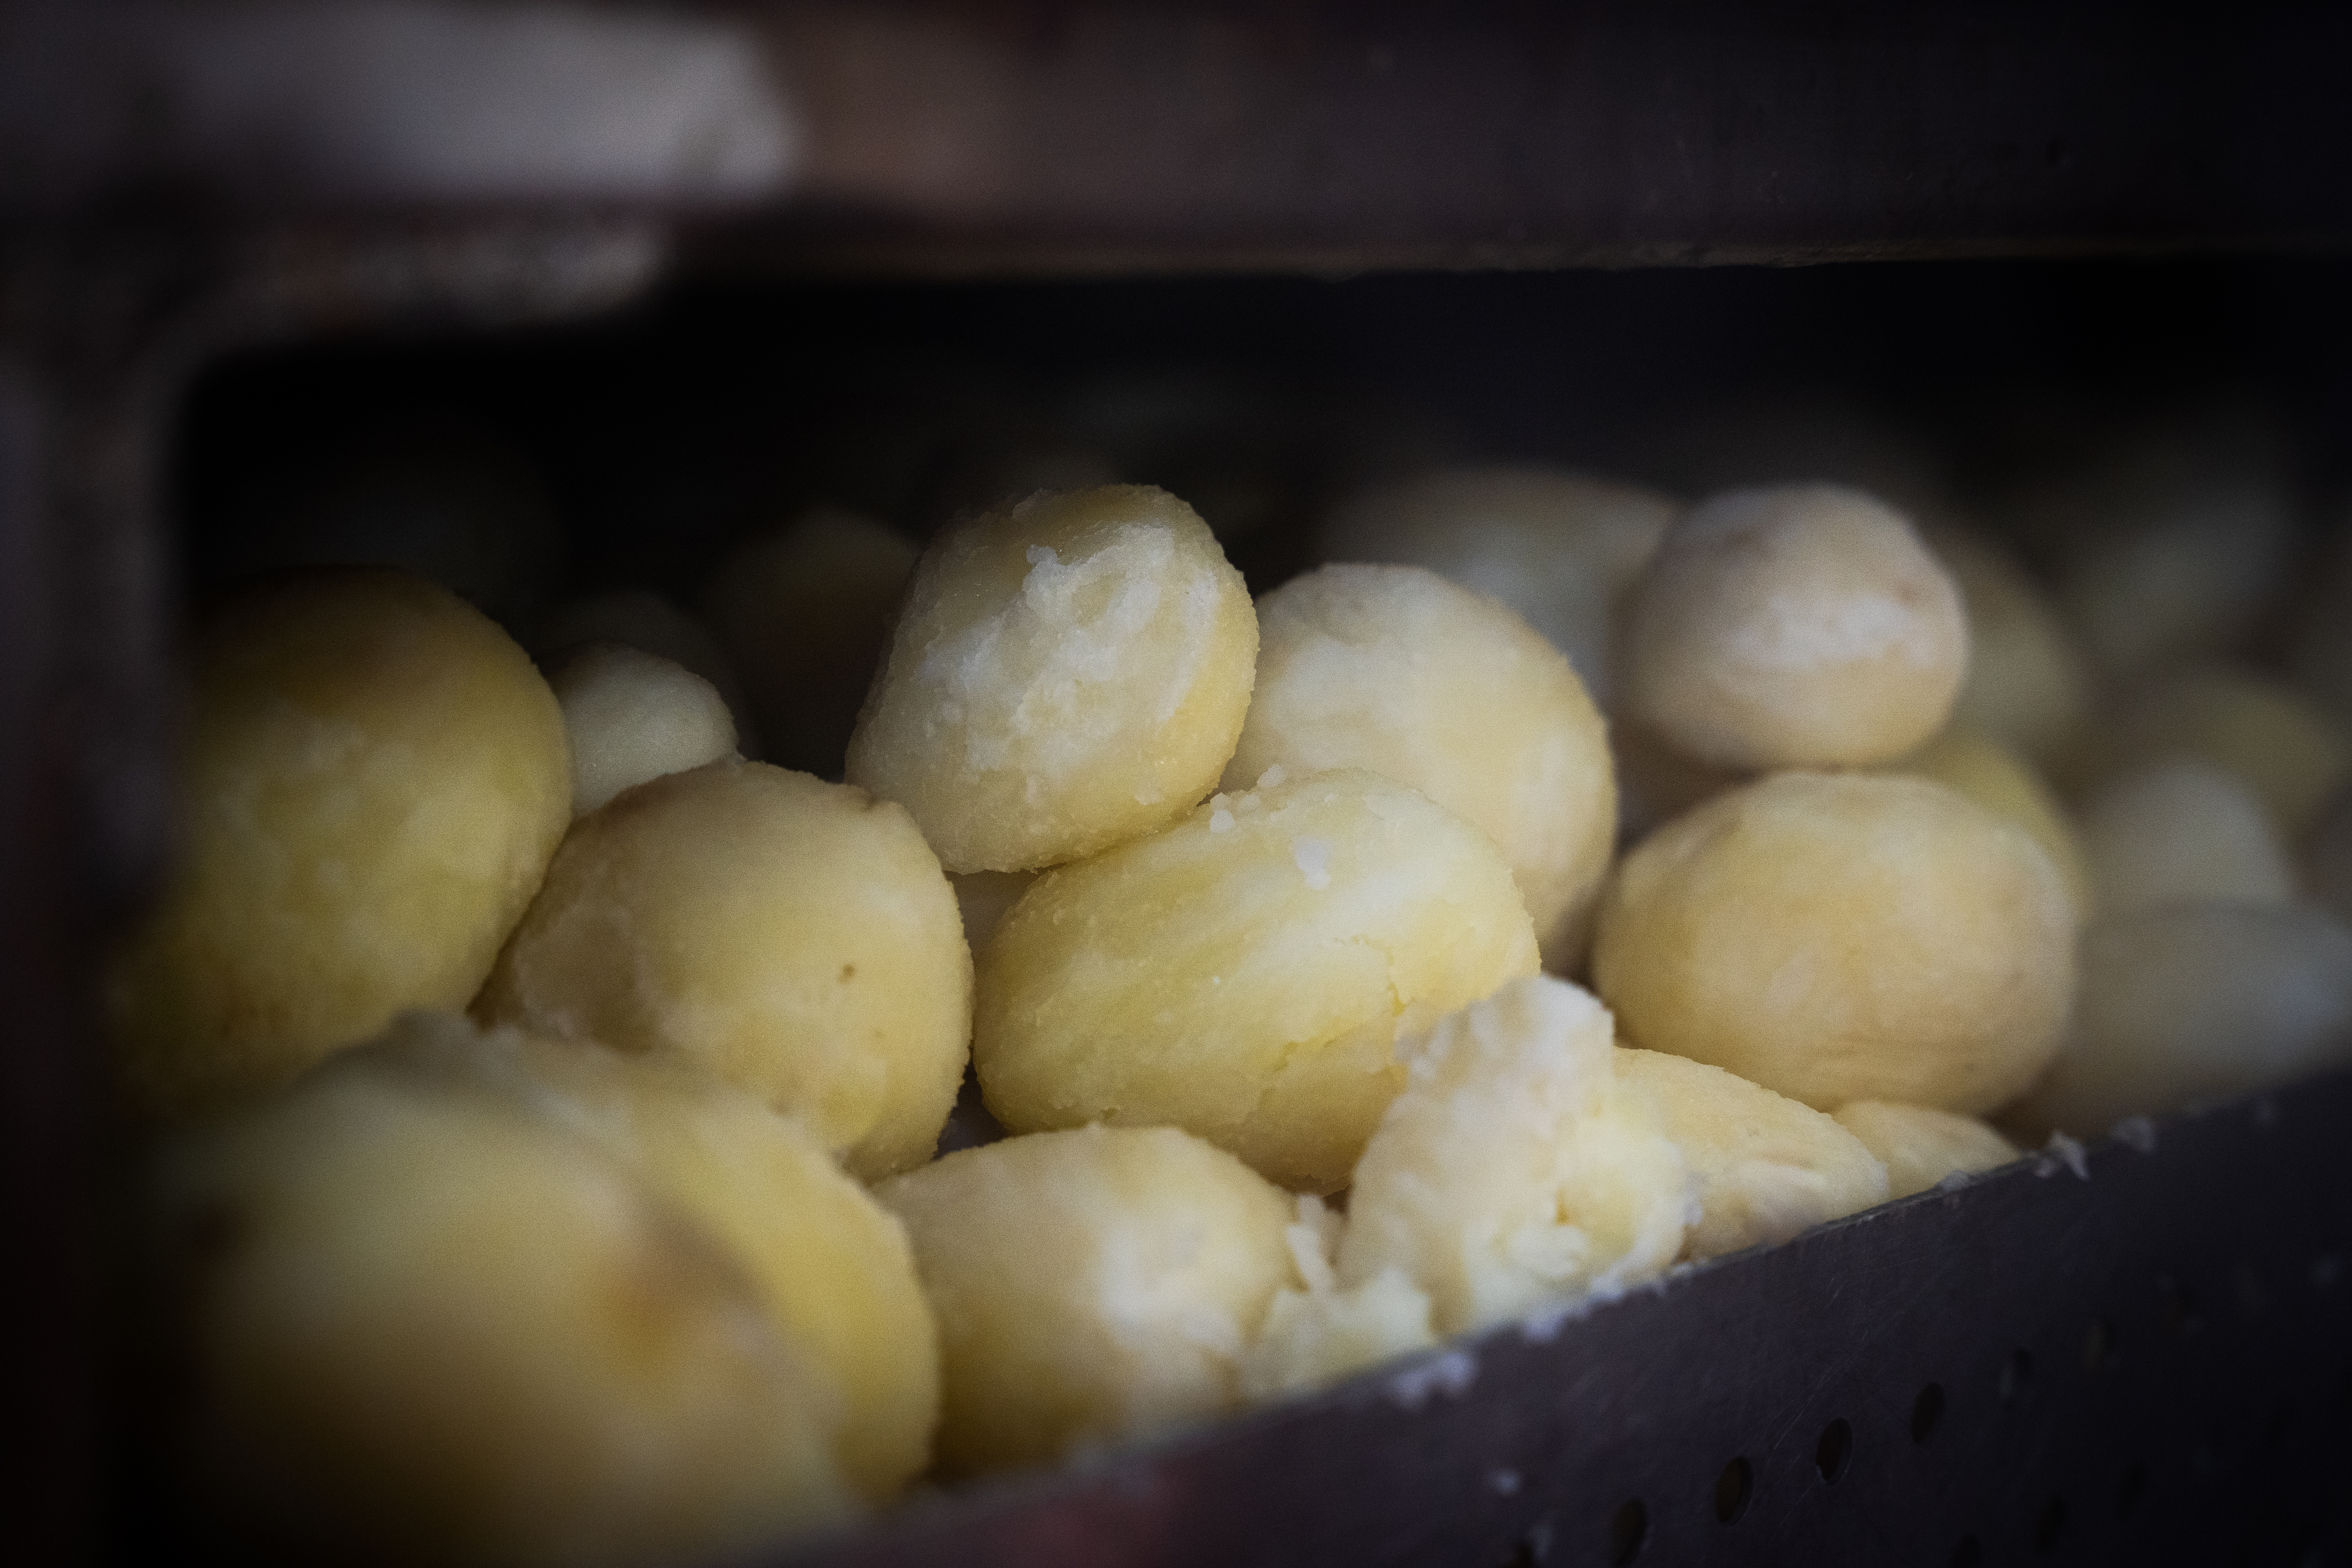 All you need to know about Potatoes